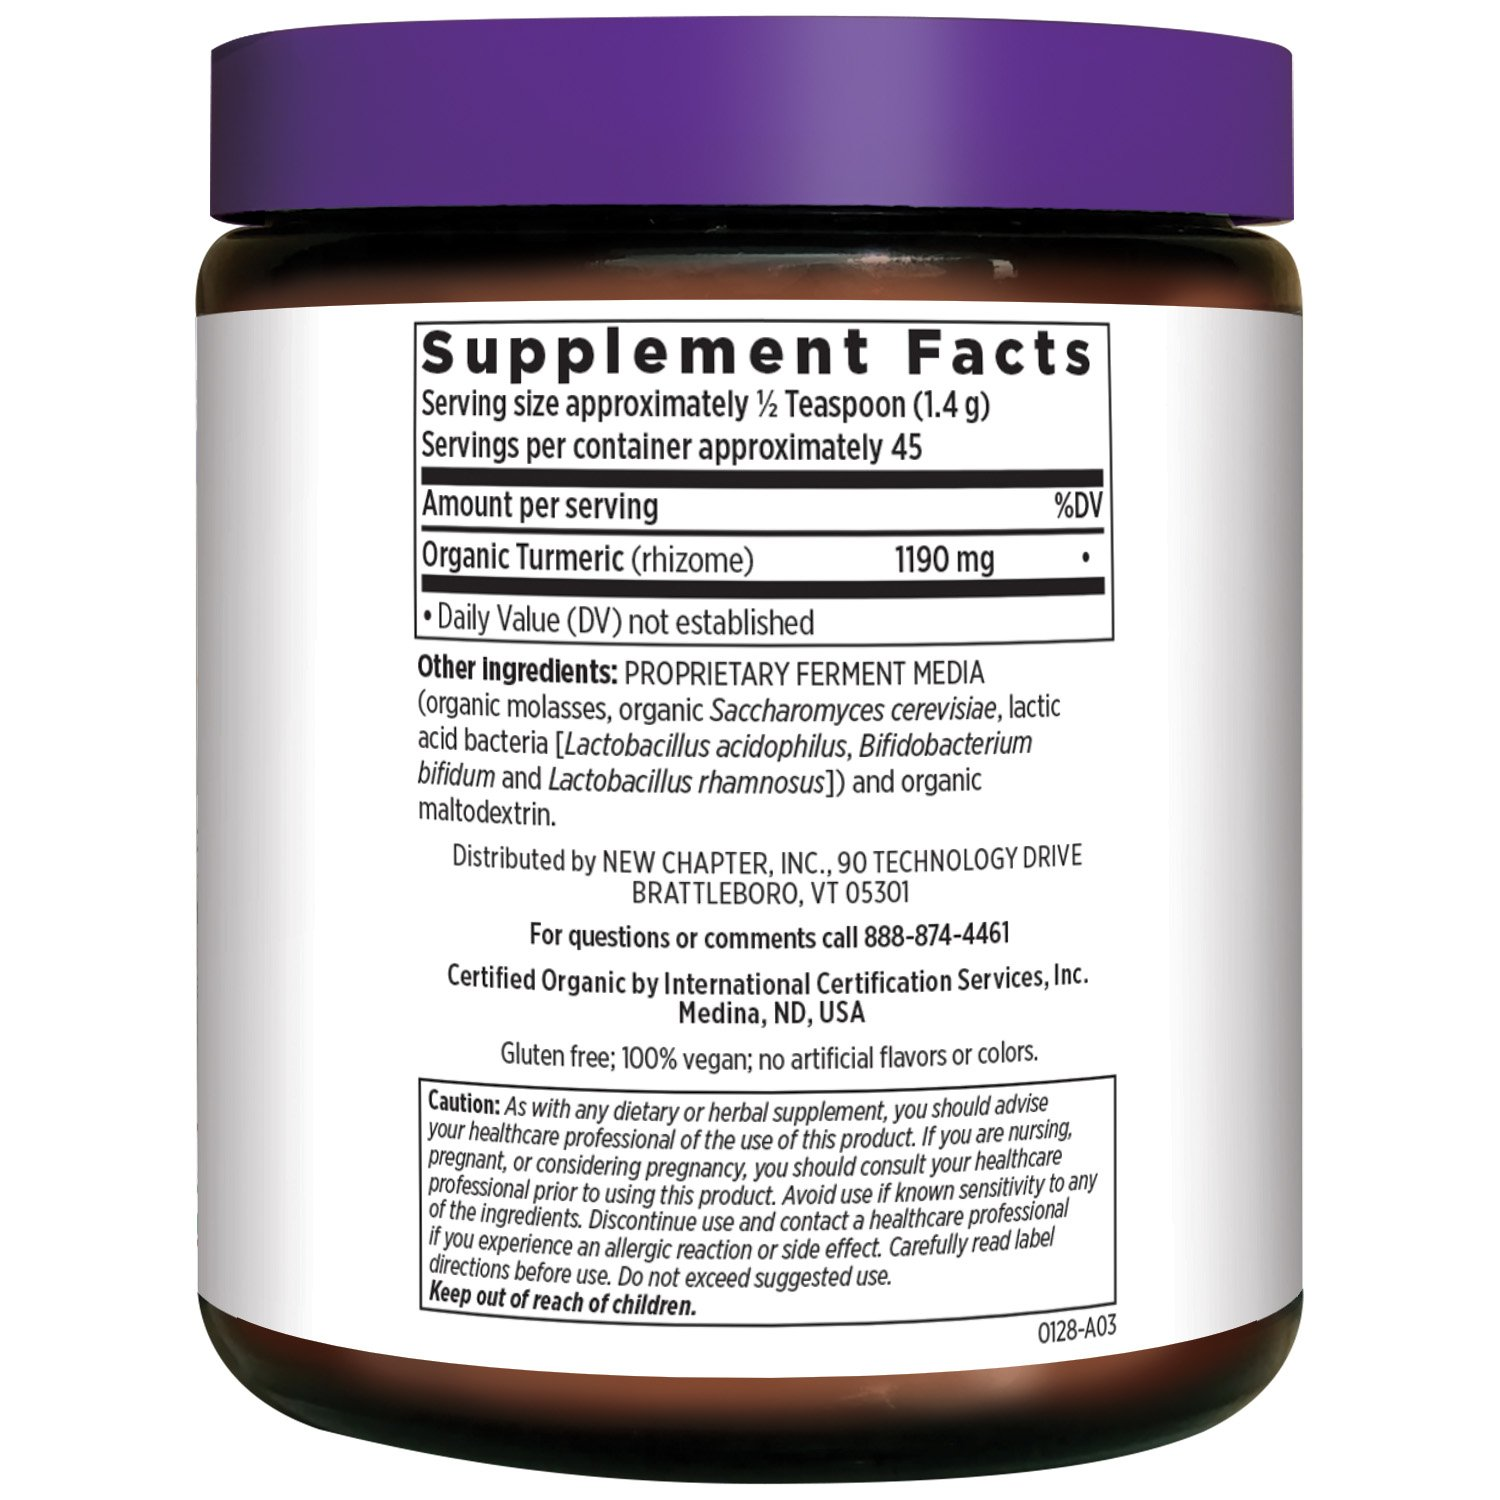 New Chapter Organic Turmeric Powder – Fermented Turmeric Booster Powder for Brain, Heart and Inflammation Support 45 Servings